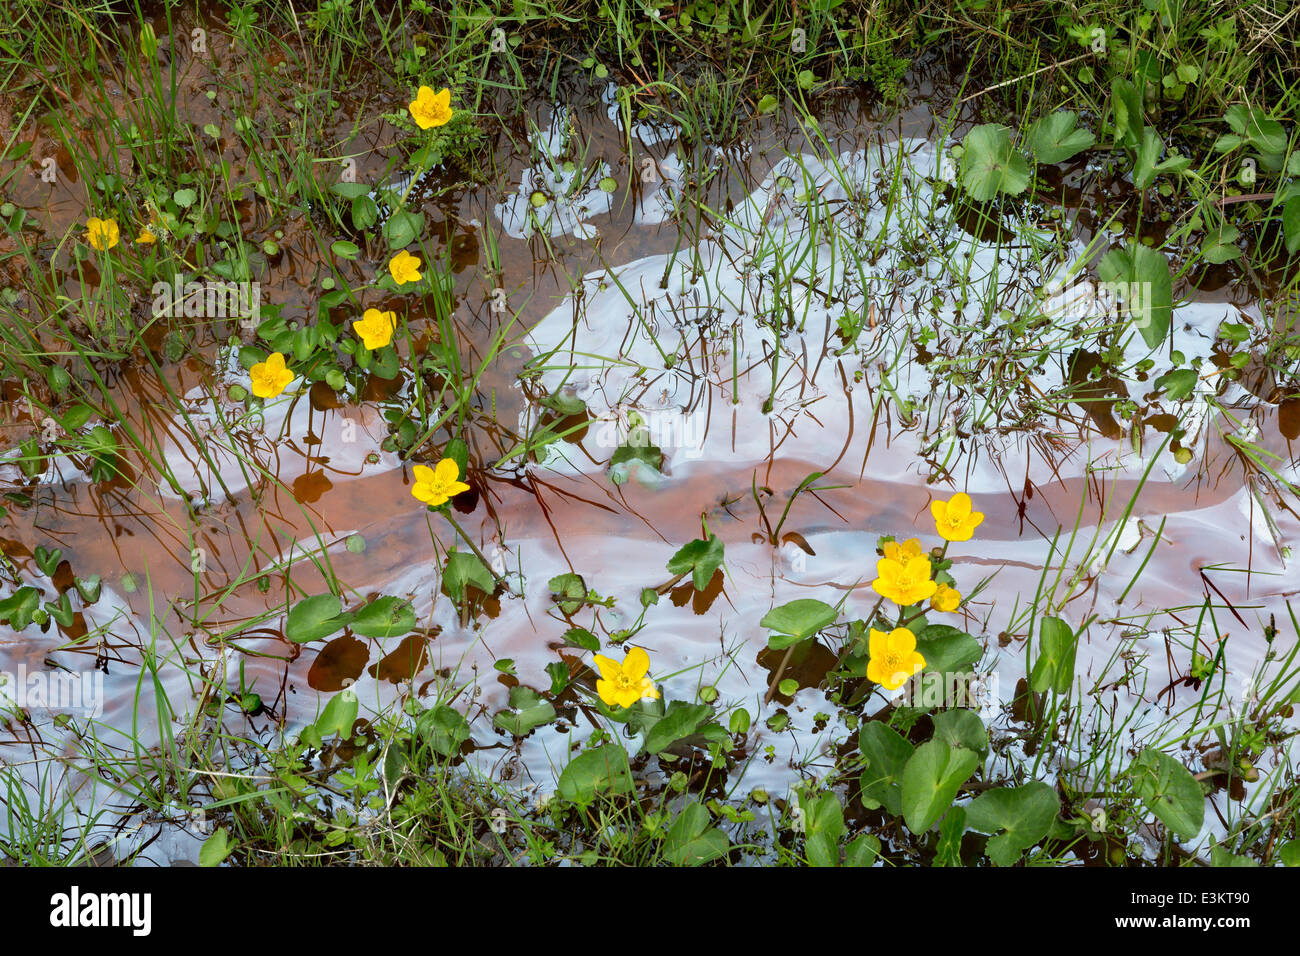 Oil leakage in a little river in Scotland, with yellow wildflowers - Stock Image